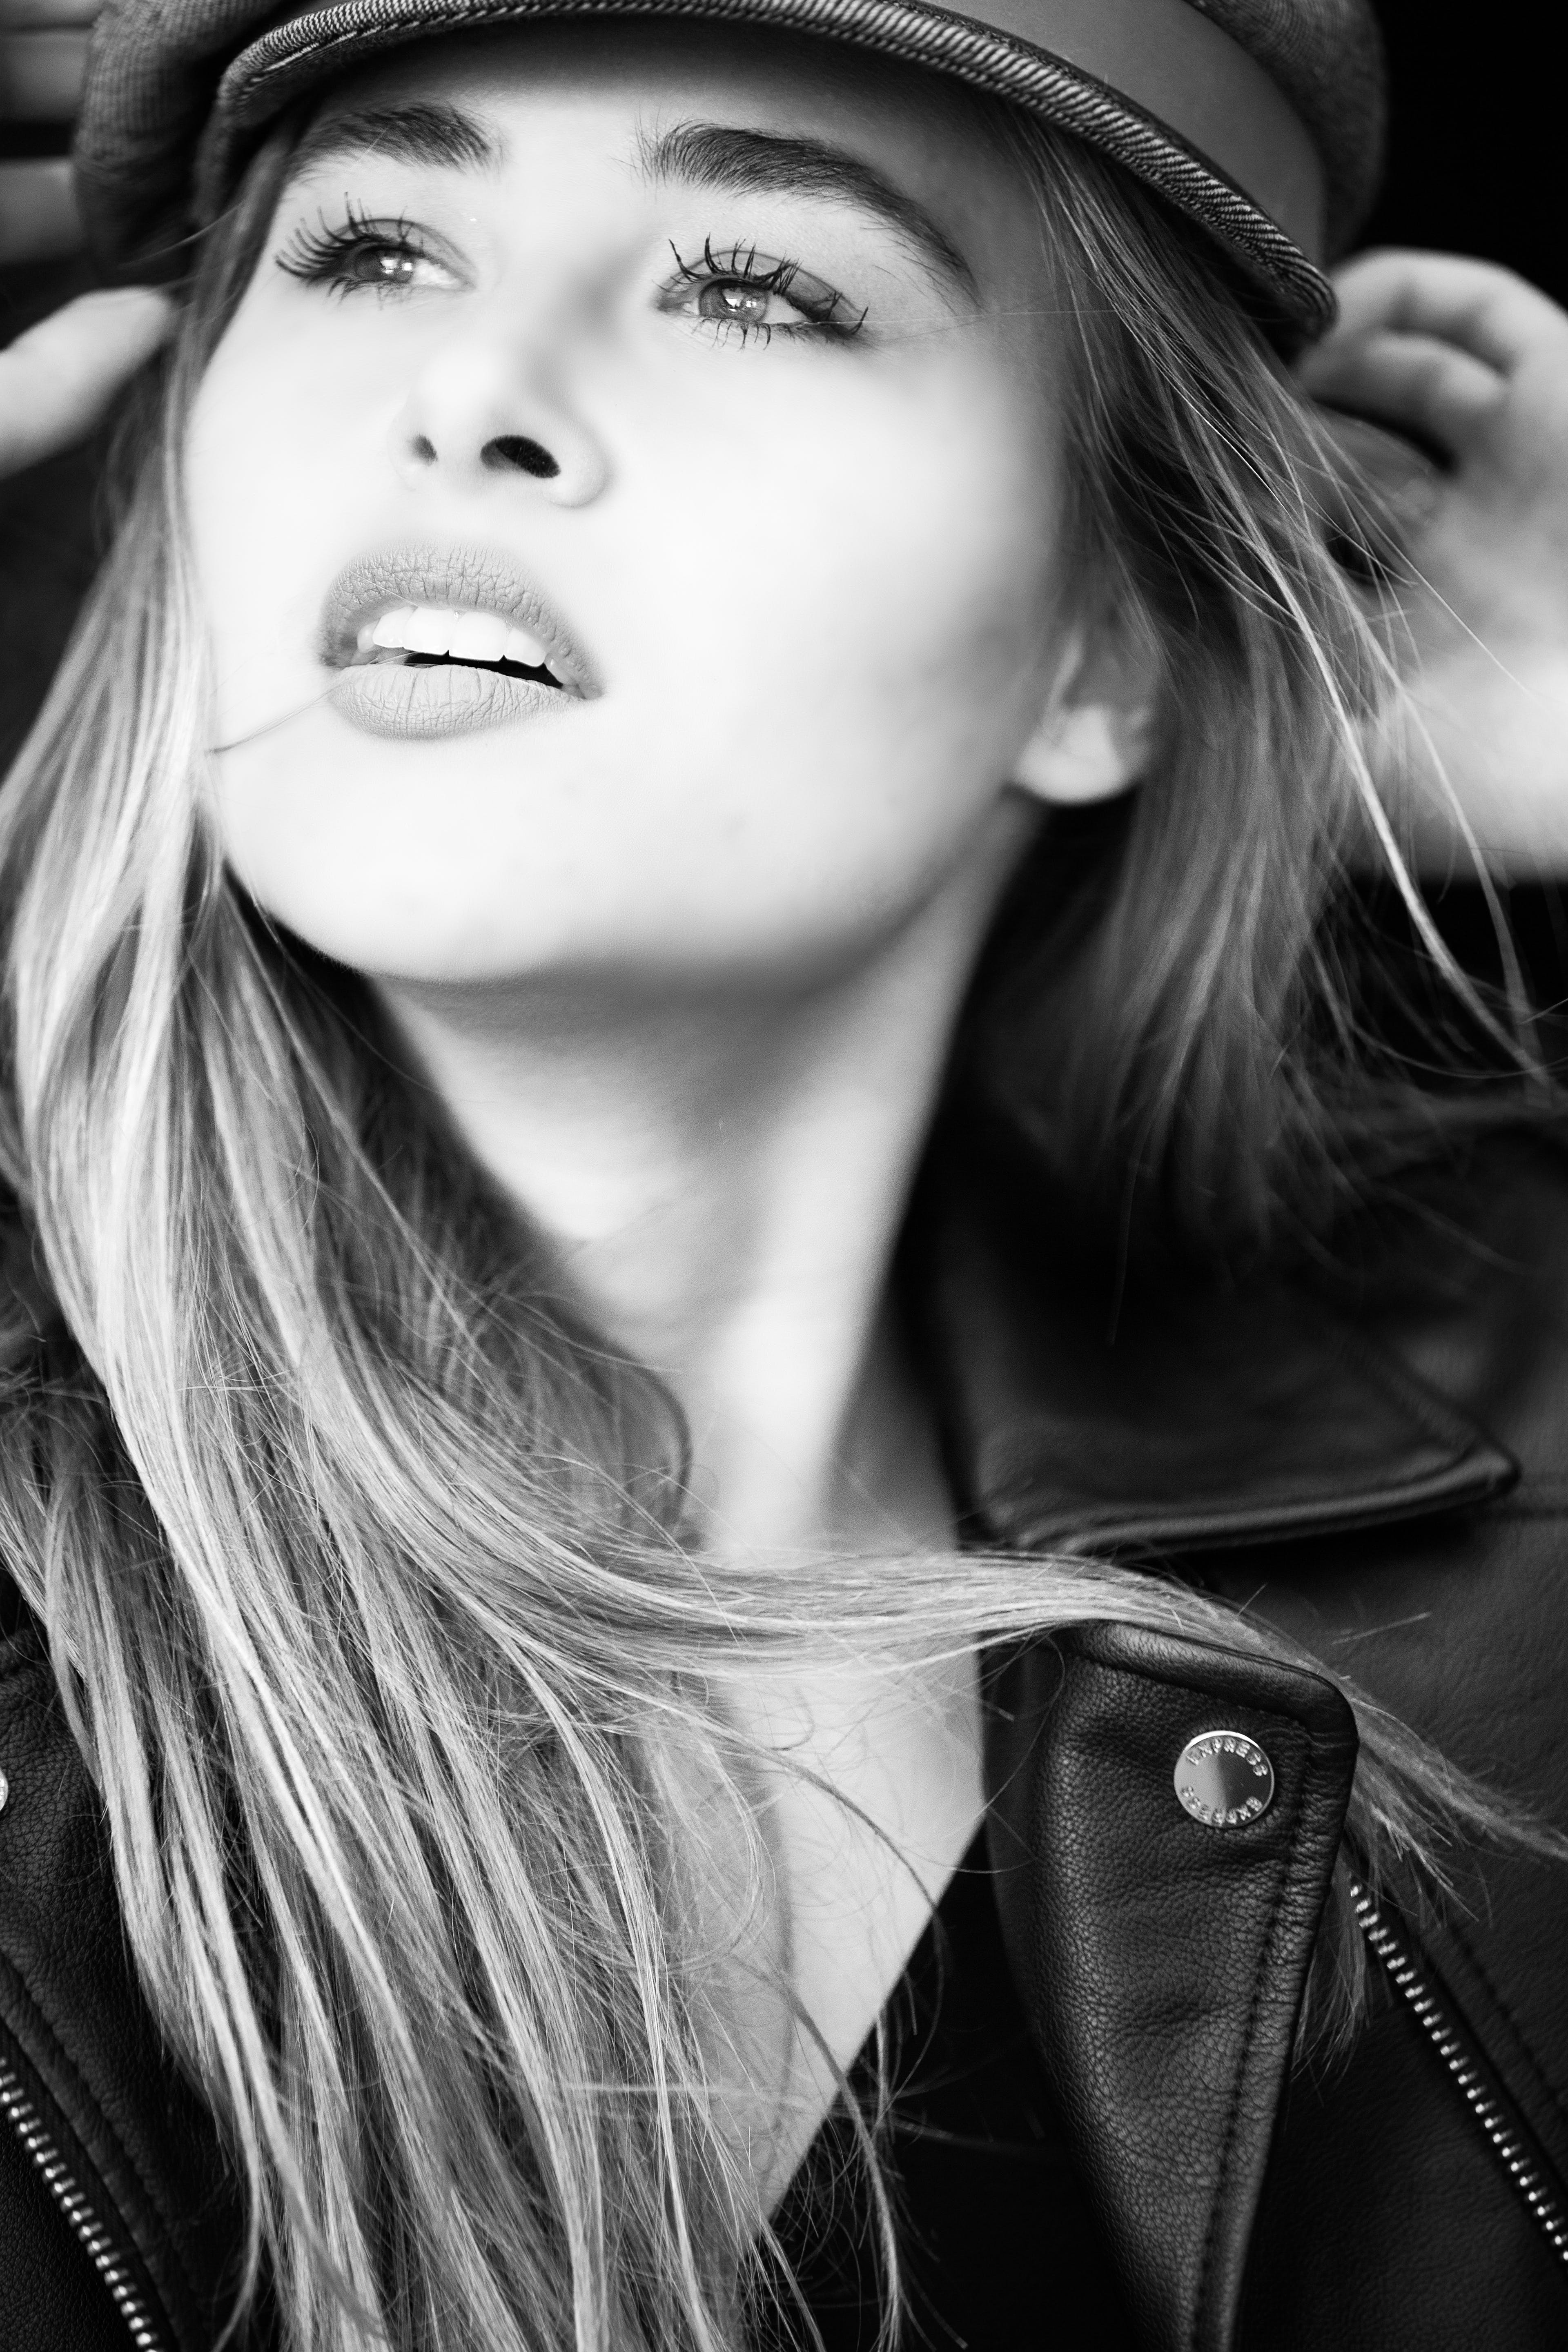 Grayscale Photography of Woman Wears Leather Jacket and Cap